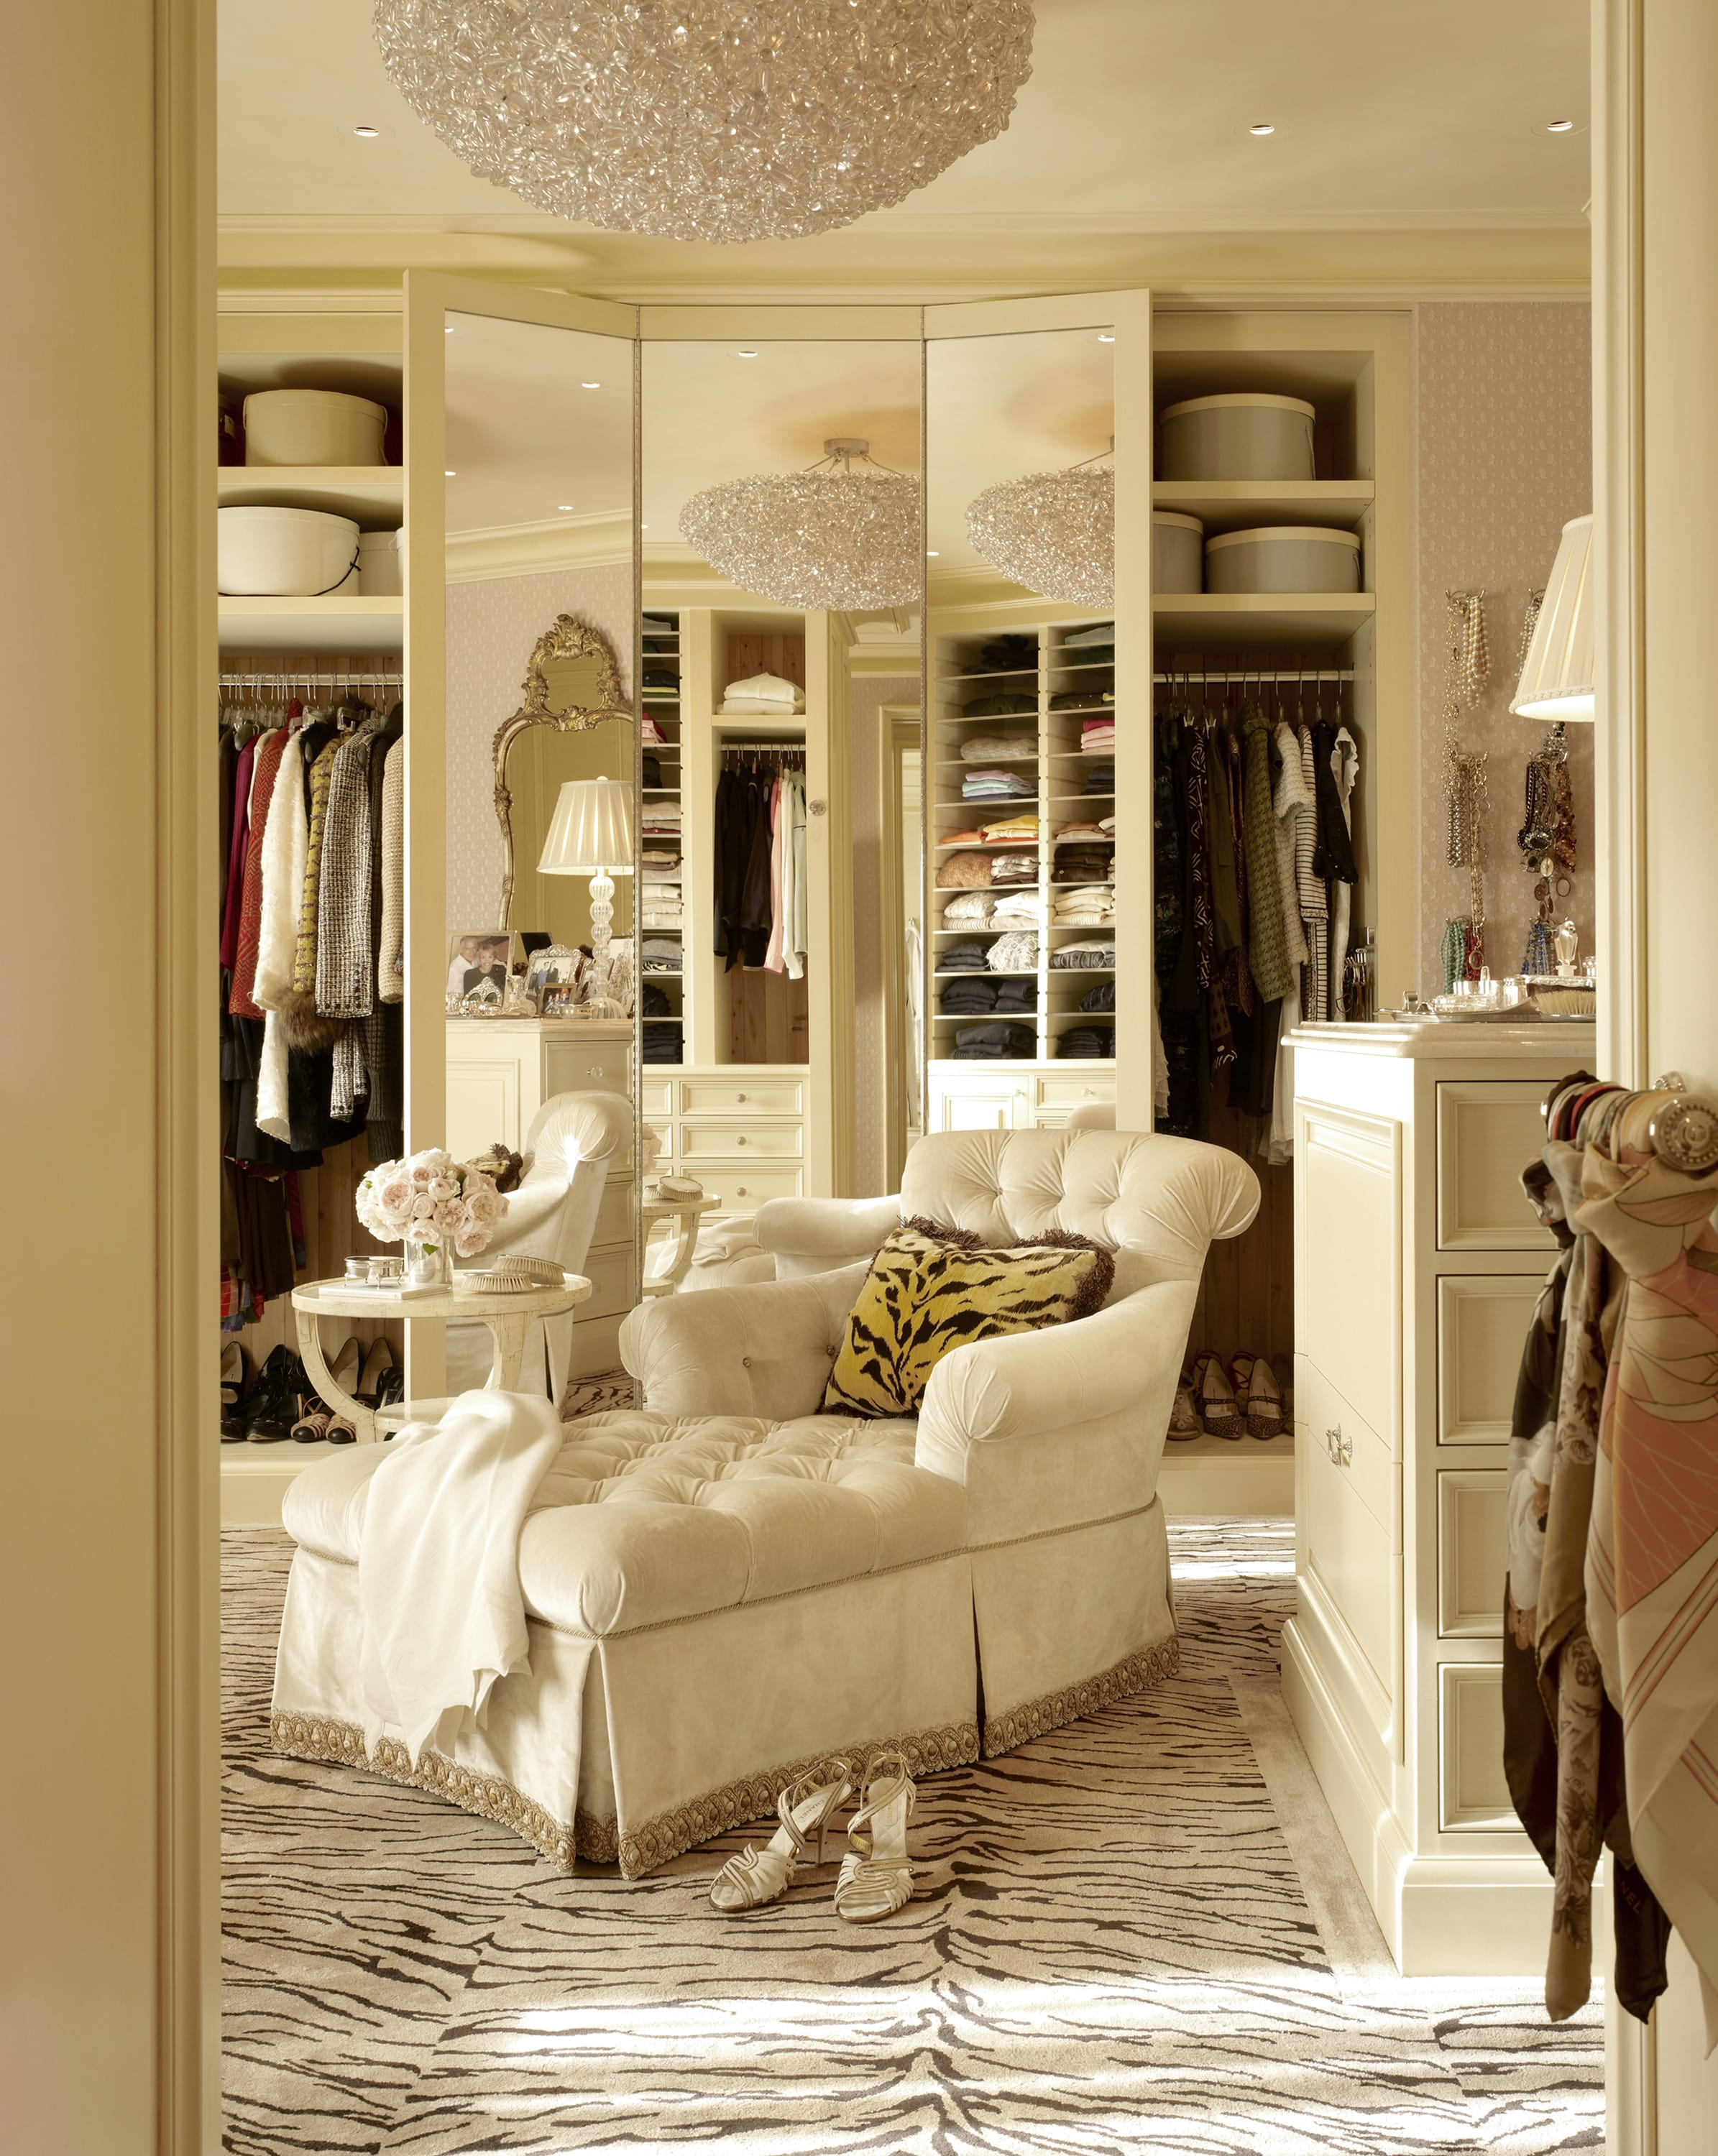 Dressing room in a 6,000-square-foot apartment with a traditional decor.